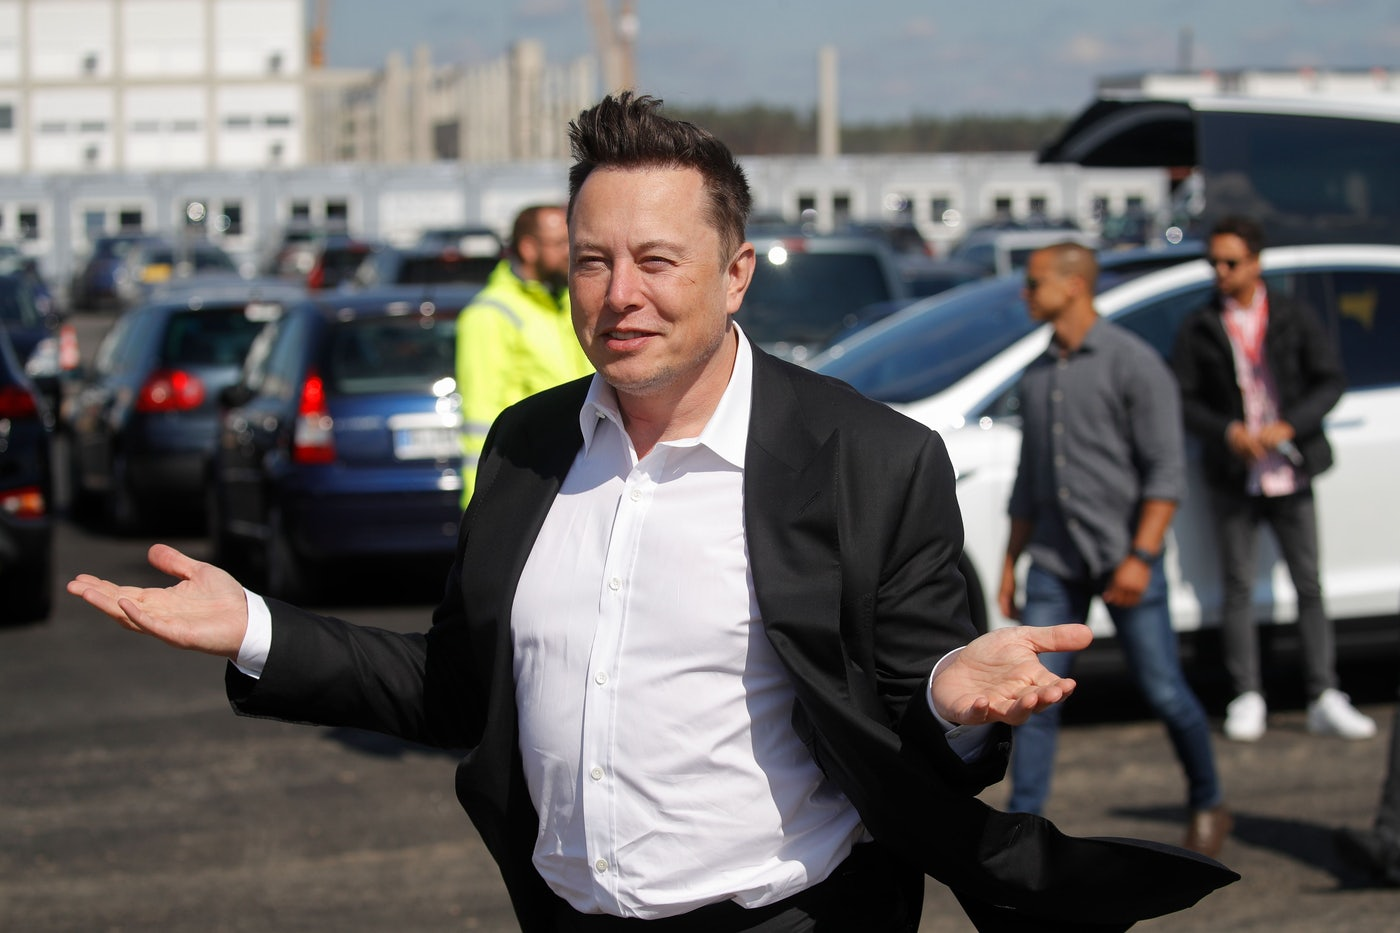 Elon Musk, standing before a fleet of cars, with hair and jacket swept up by the breeze